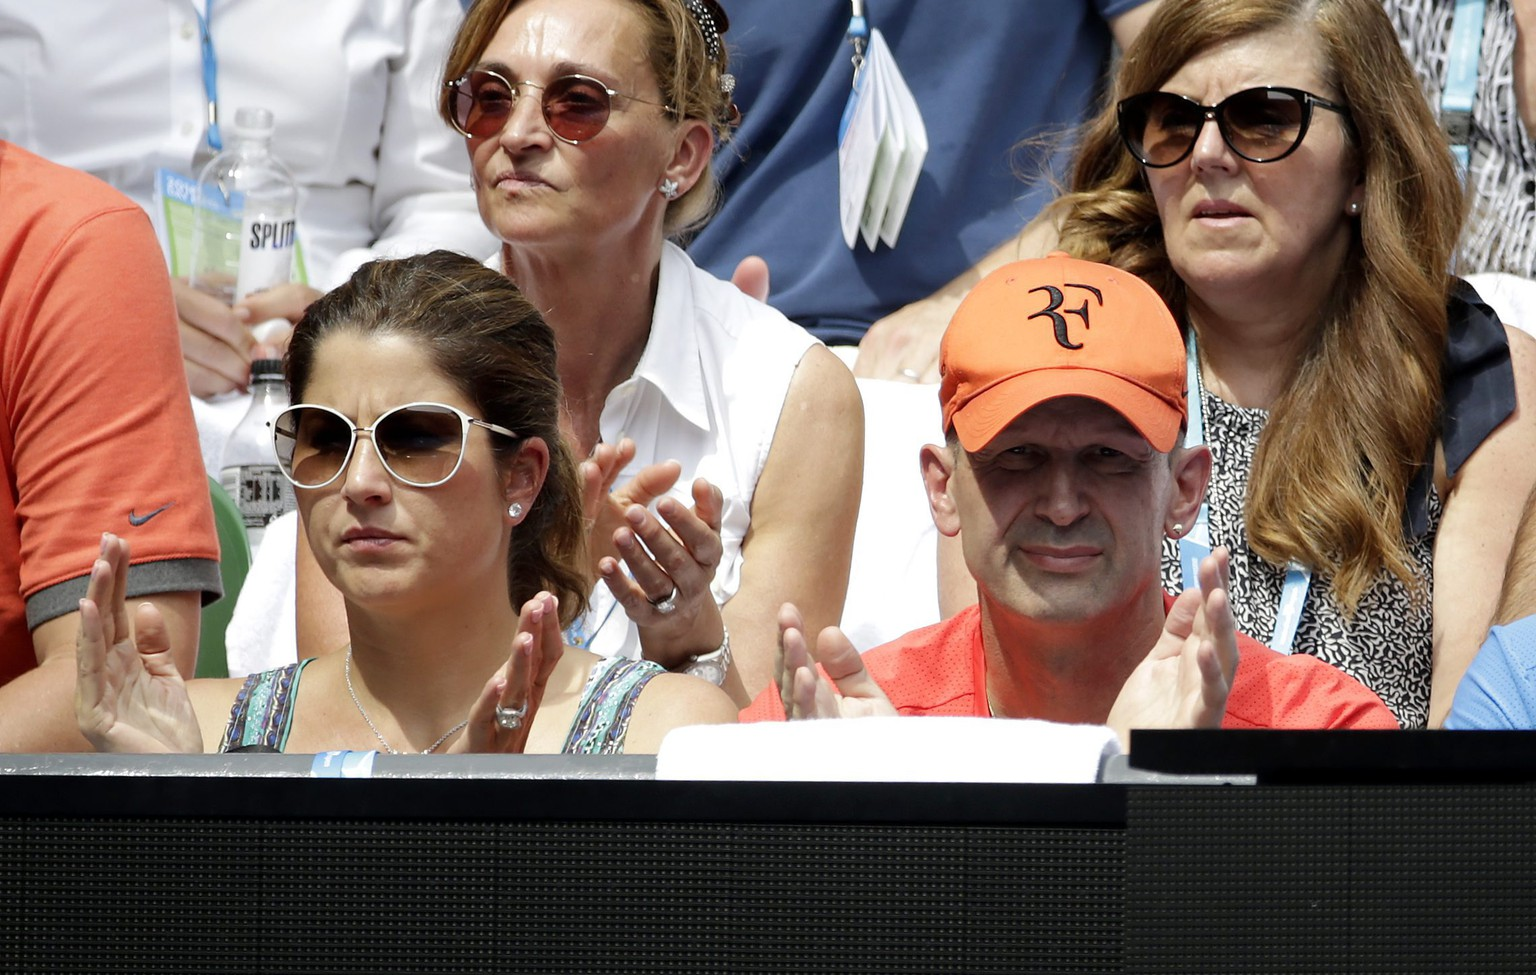 epa05126202 Ivan Ljubicic (R), the coach of Roger Federer of Switzerland and Mirka Federer watch the quarter final match between Roger Federer against Tomas Berdych of Czech Republic at the Australian Open tennis tournament in Melbourne, Australia, 26 January 2016.  EPA/LYNN BO BO